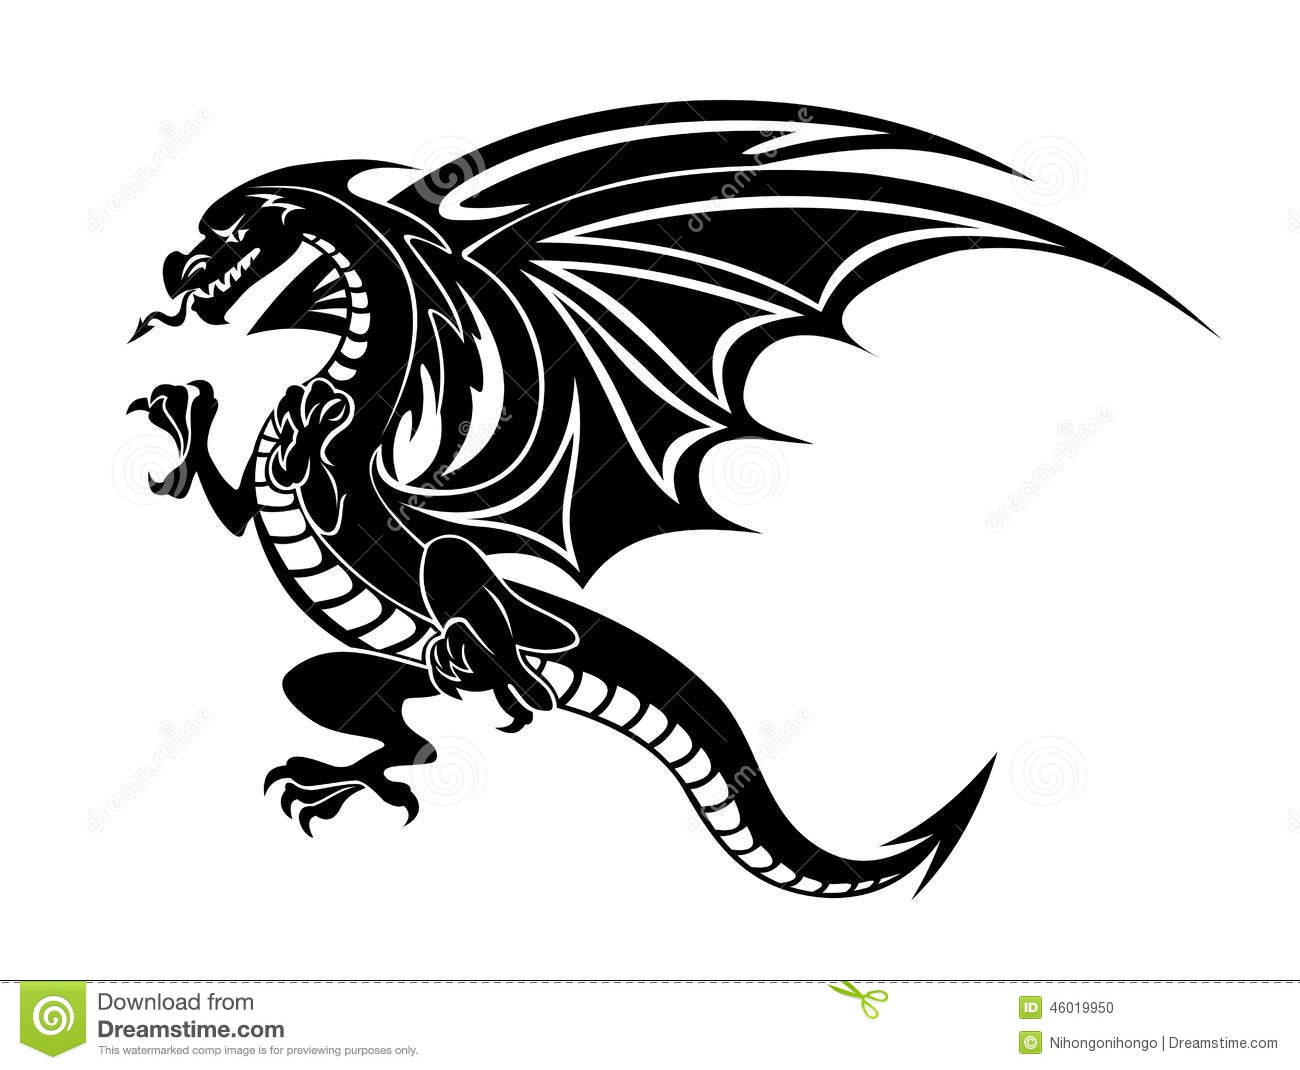 Angry Black Dragon Stock Vector Illustration Of Design